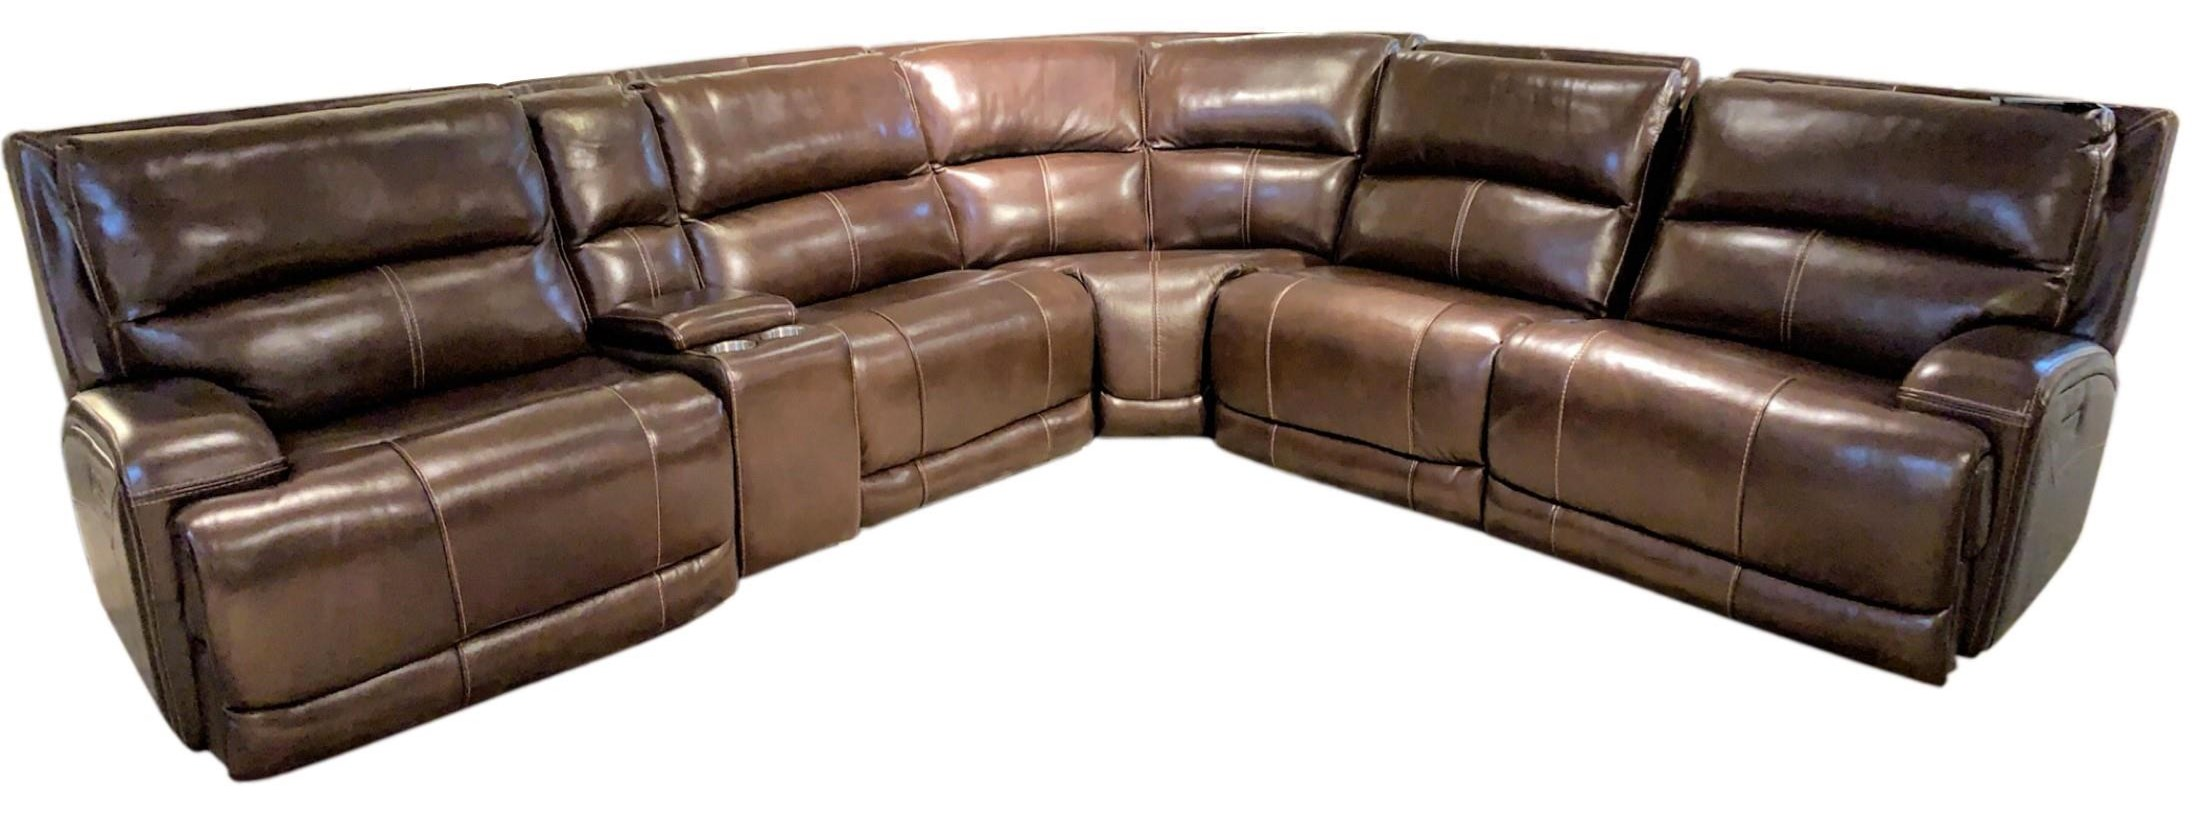 Leather In Motion Reclining Sectional by Leather In Motion at Sprintz Furniture